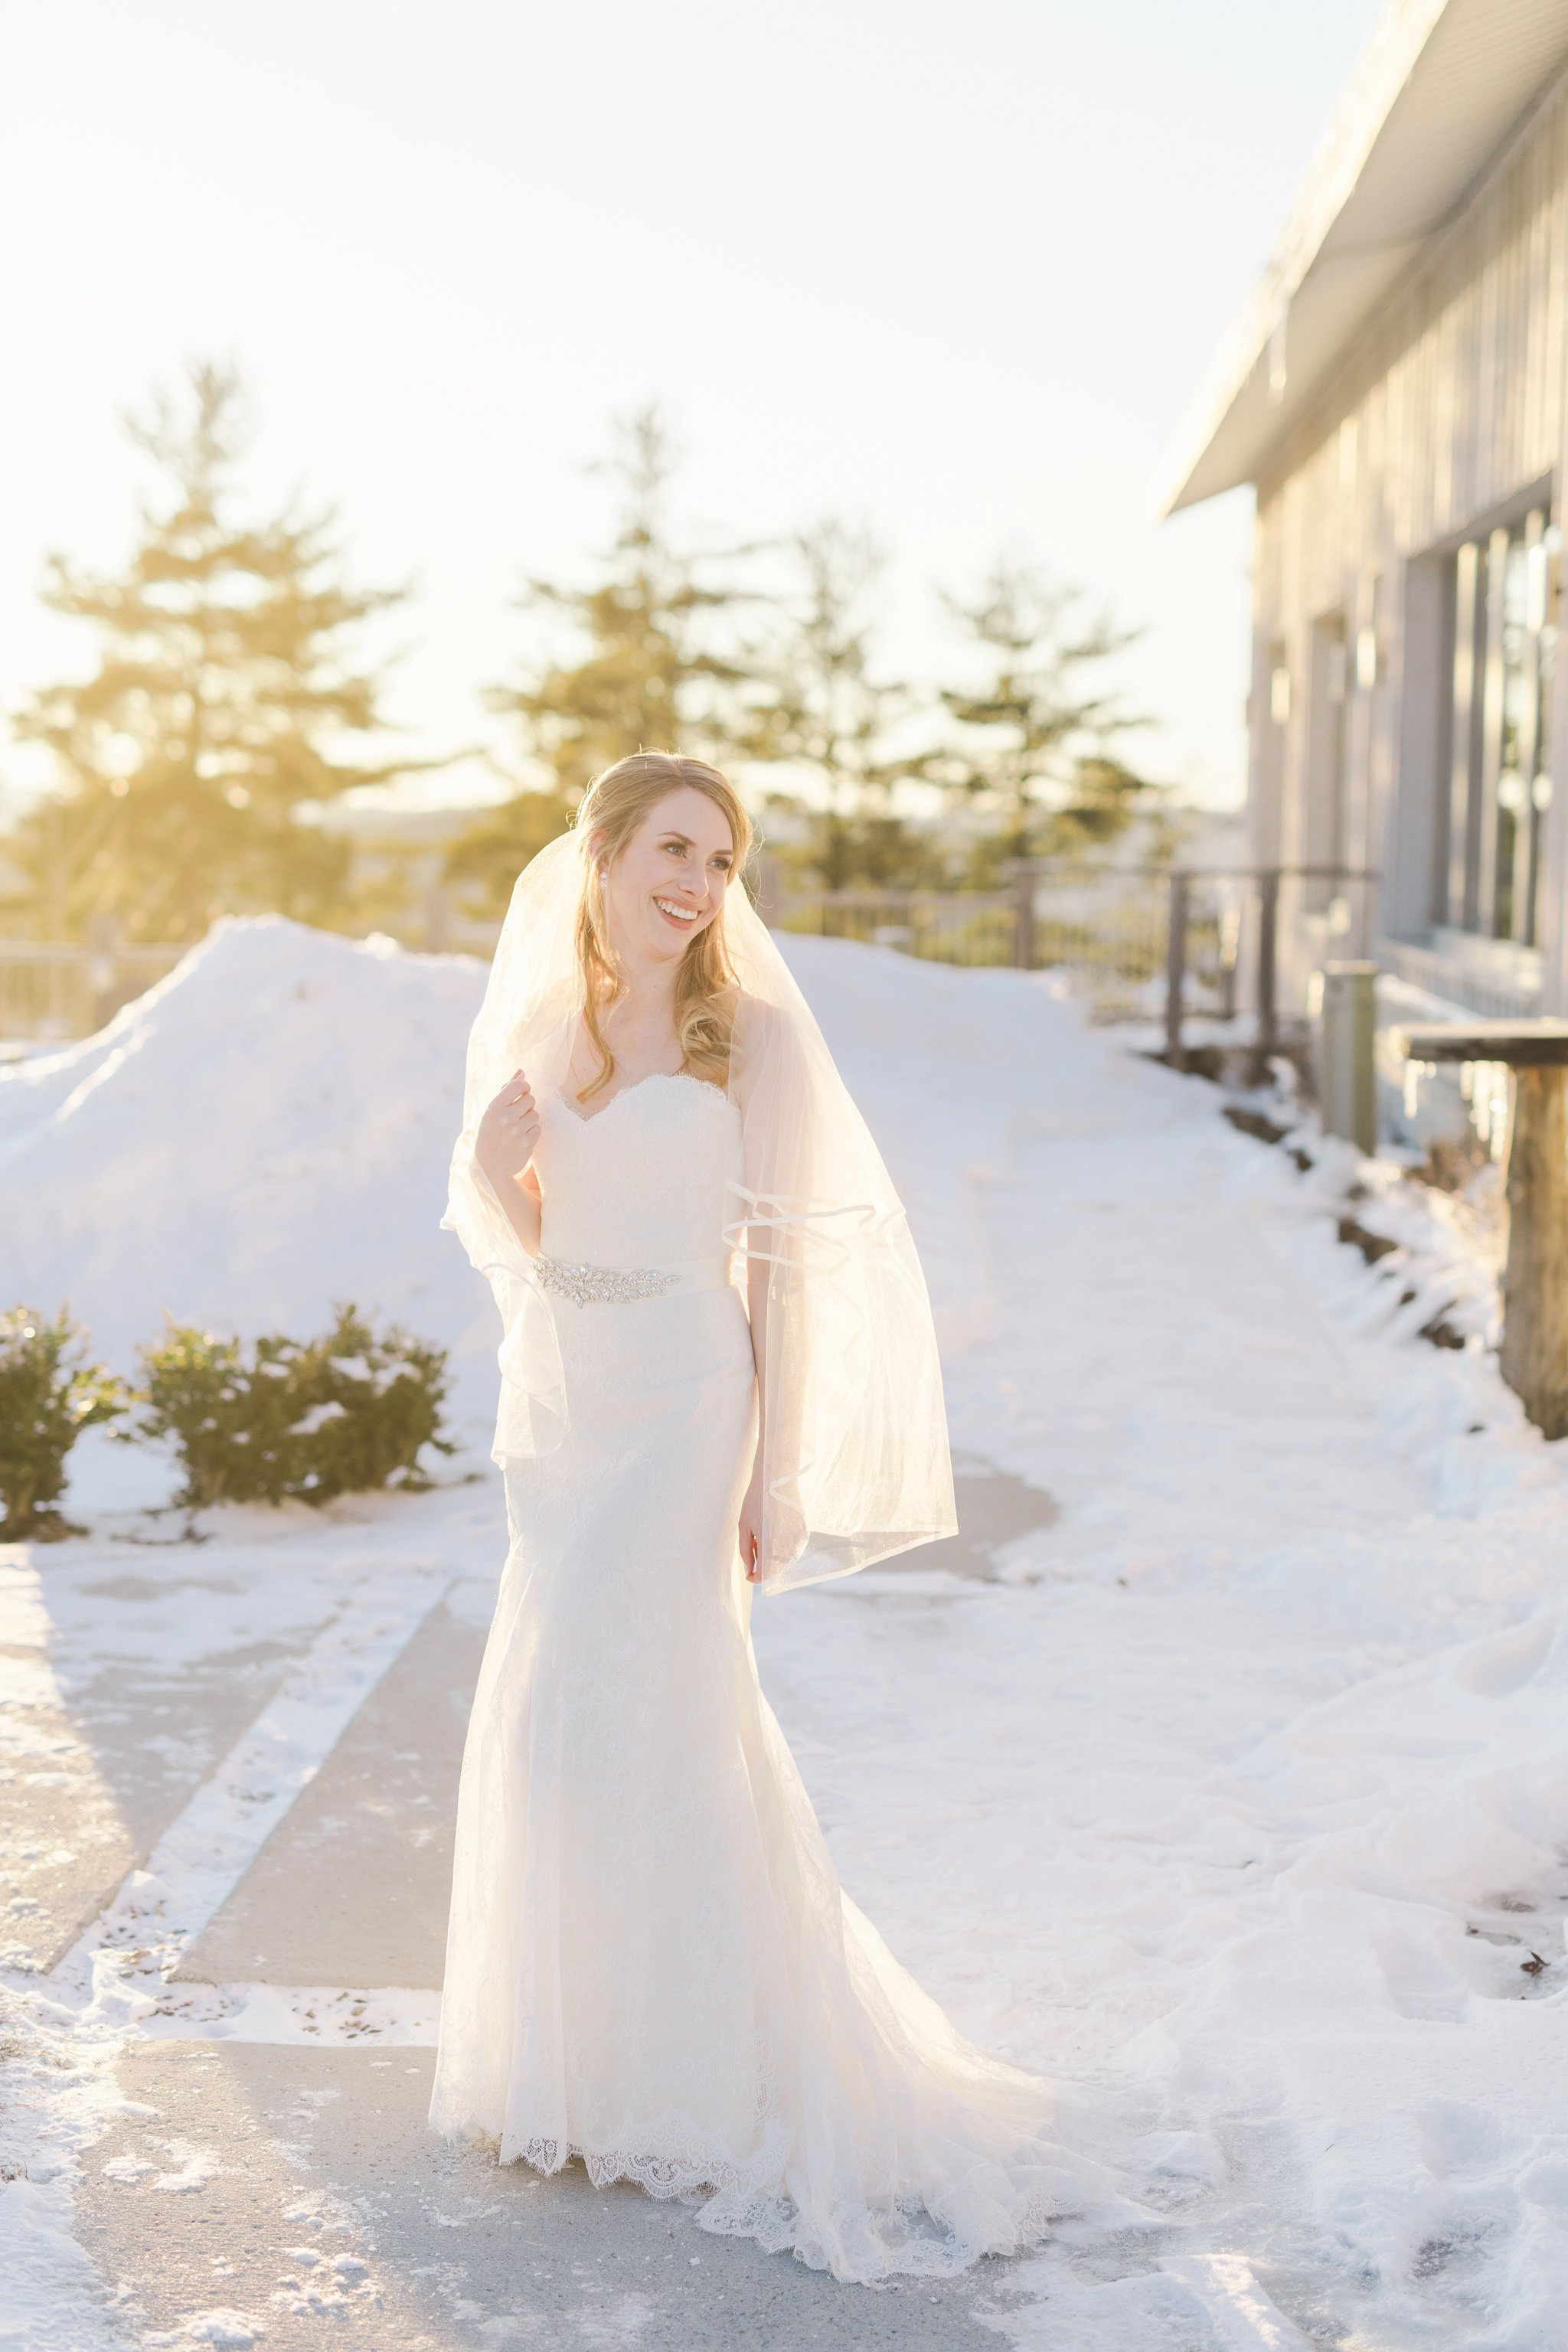 Bridal portraits at the Winter wedding at Le Belvedere